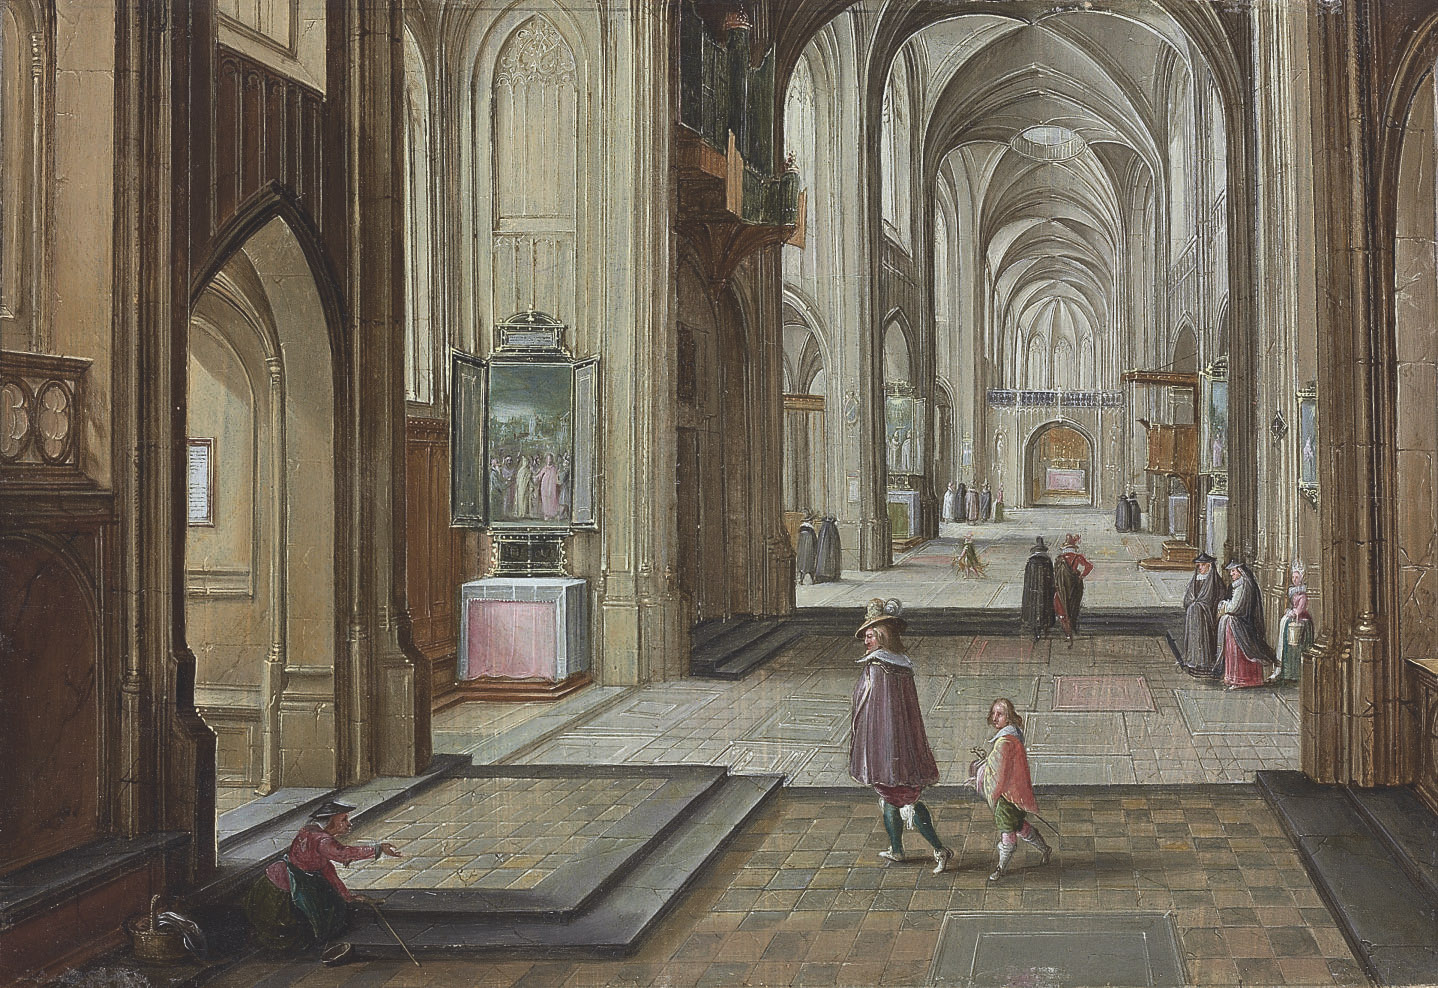 The interior of a gothic cathedral, with elegant figures